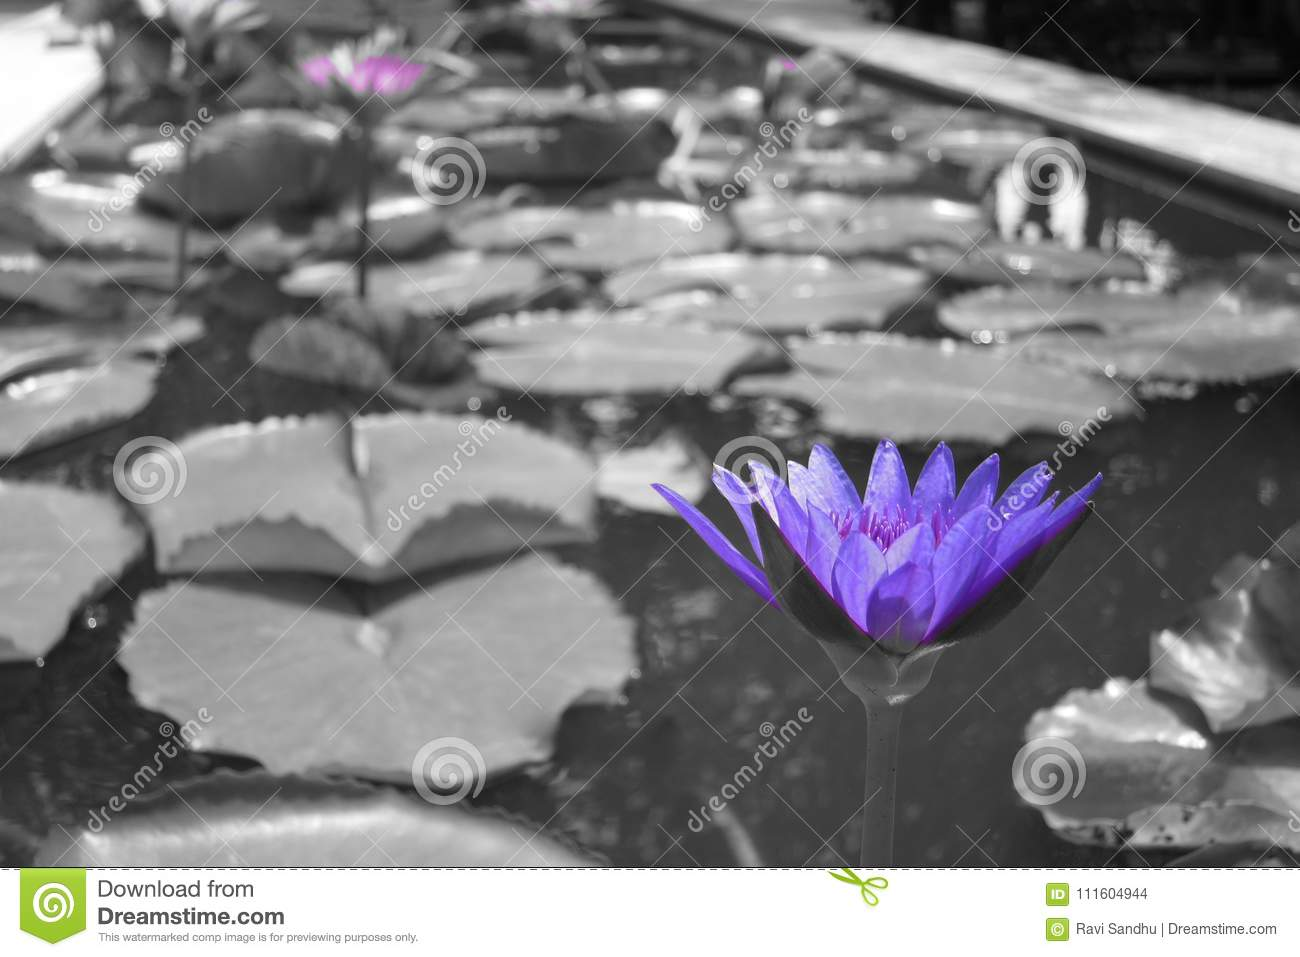 Purple lillies on pond in black and white